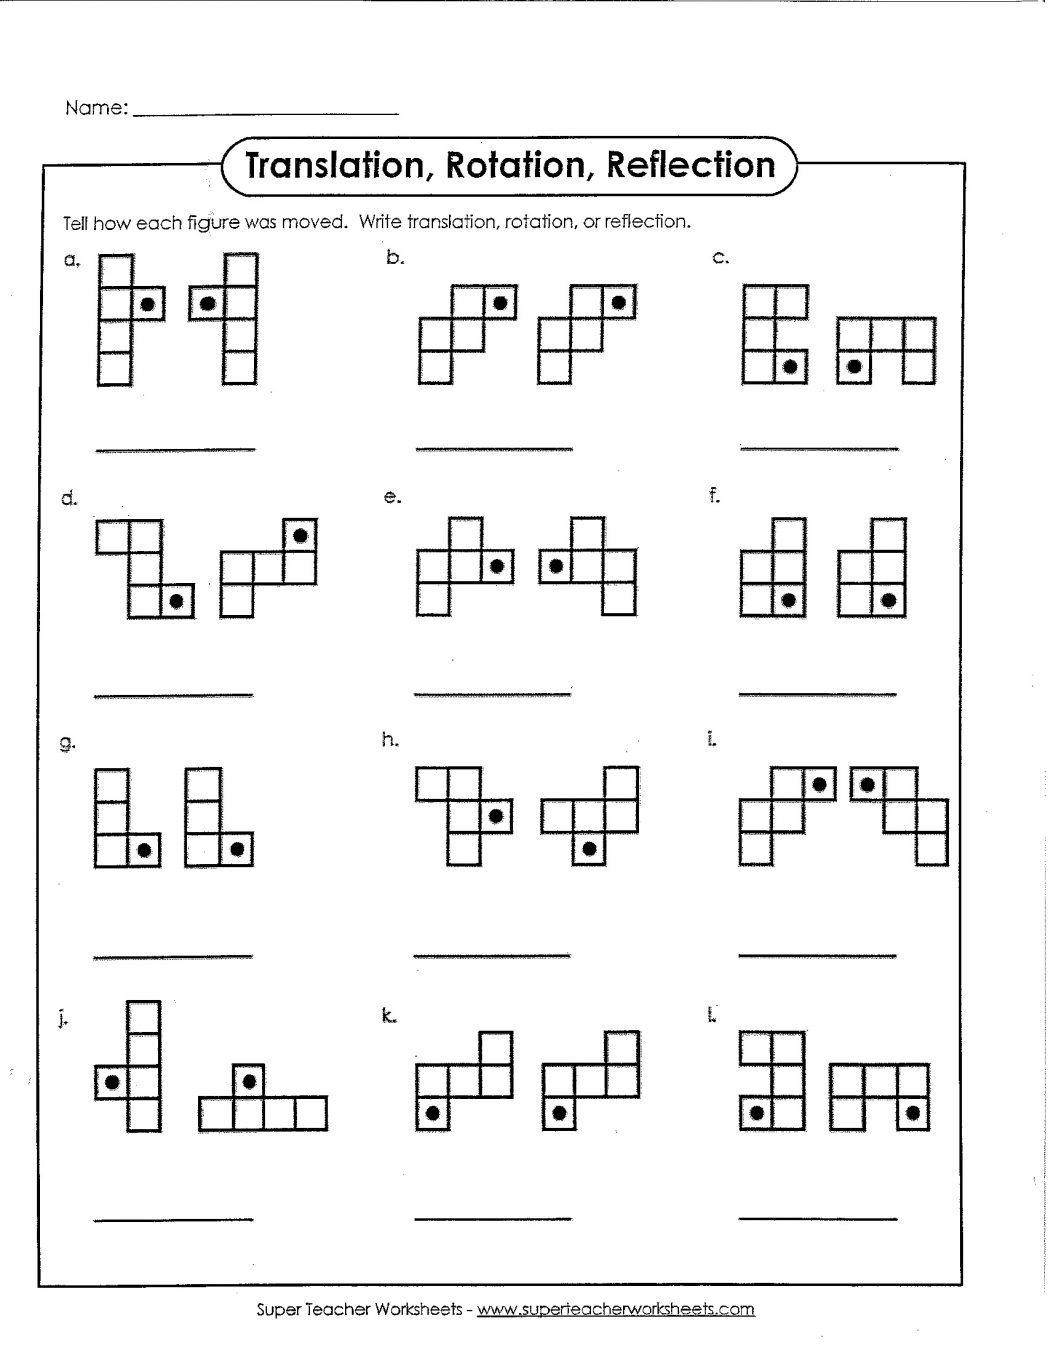 Translation Reflection Rotation Worksheets The Best Worksheets